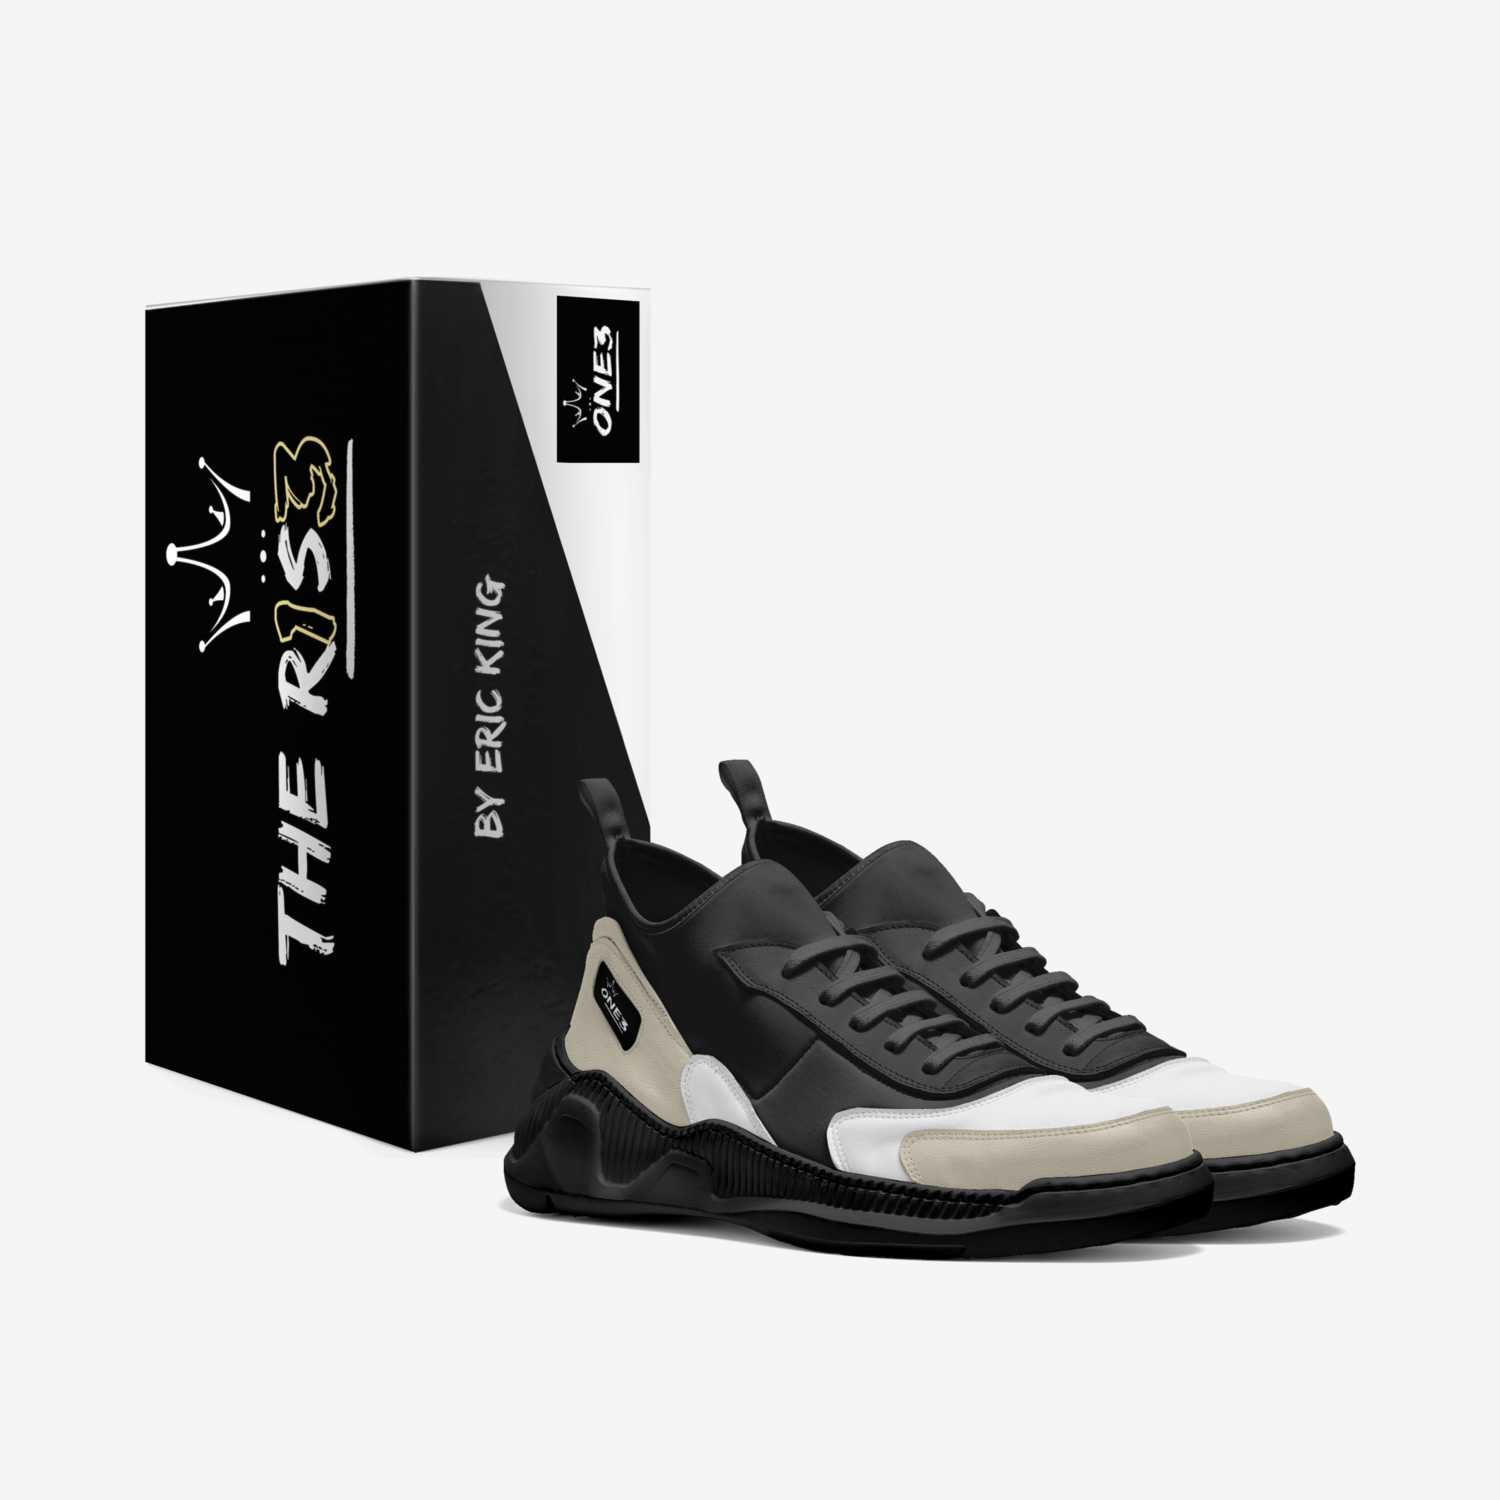 The R1S3 custom made in Italy shoes by Eric King | Box view